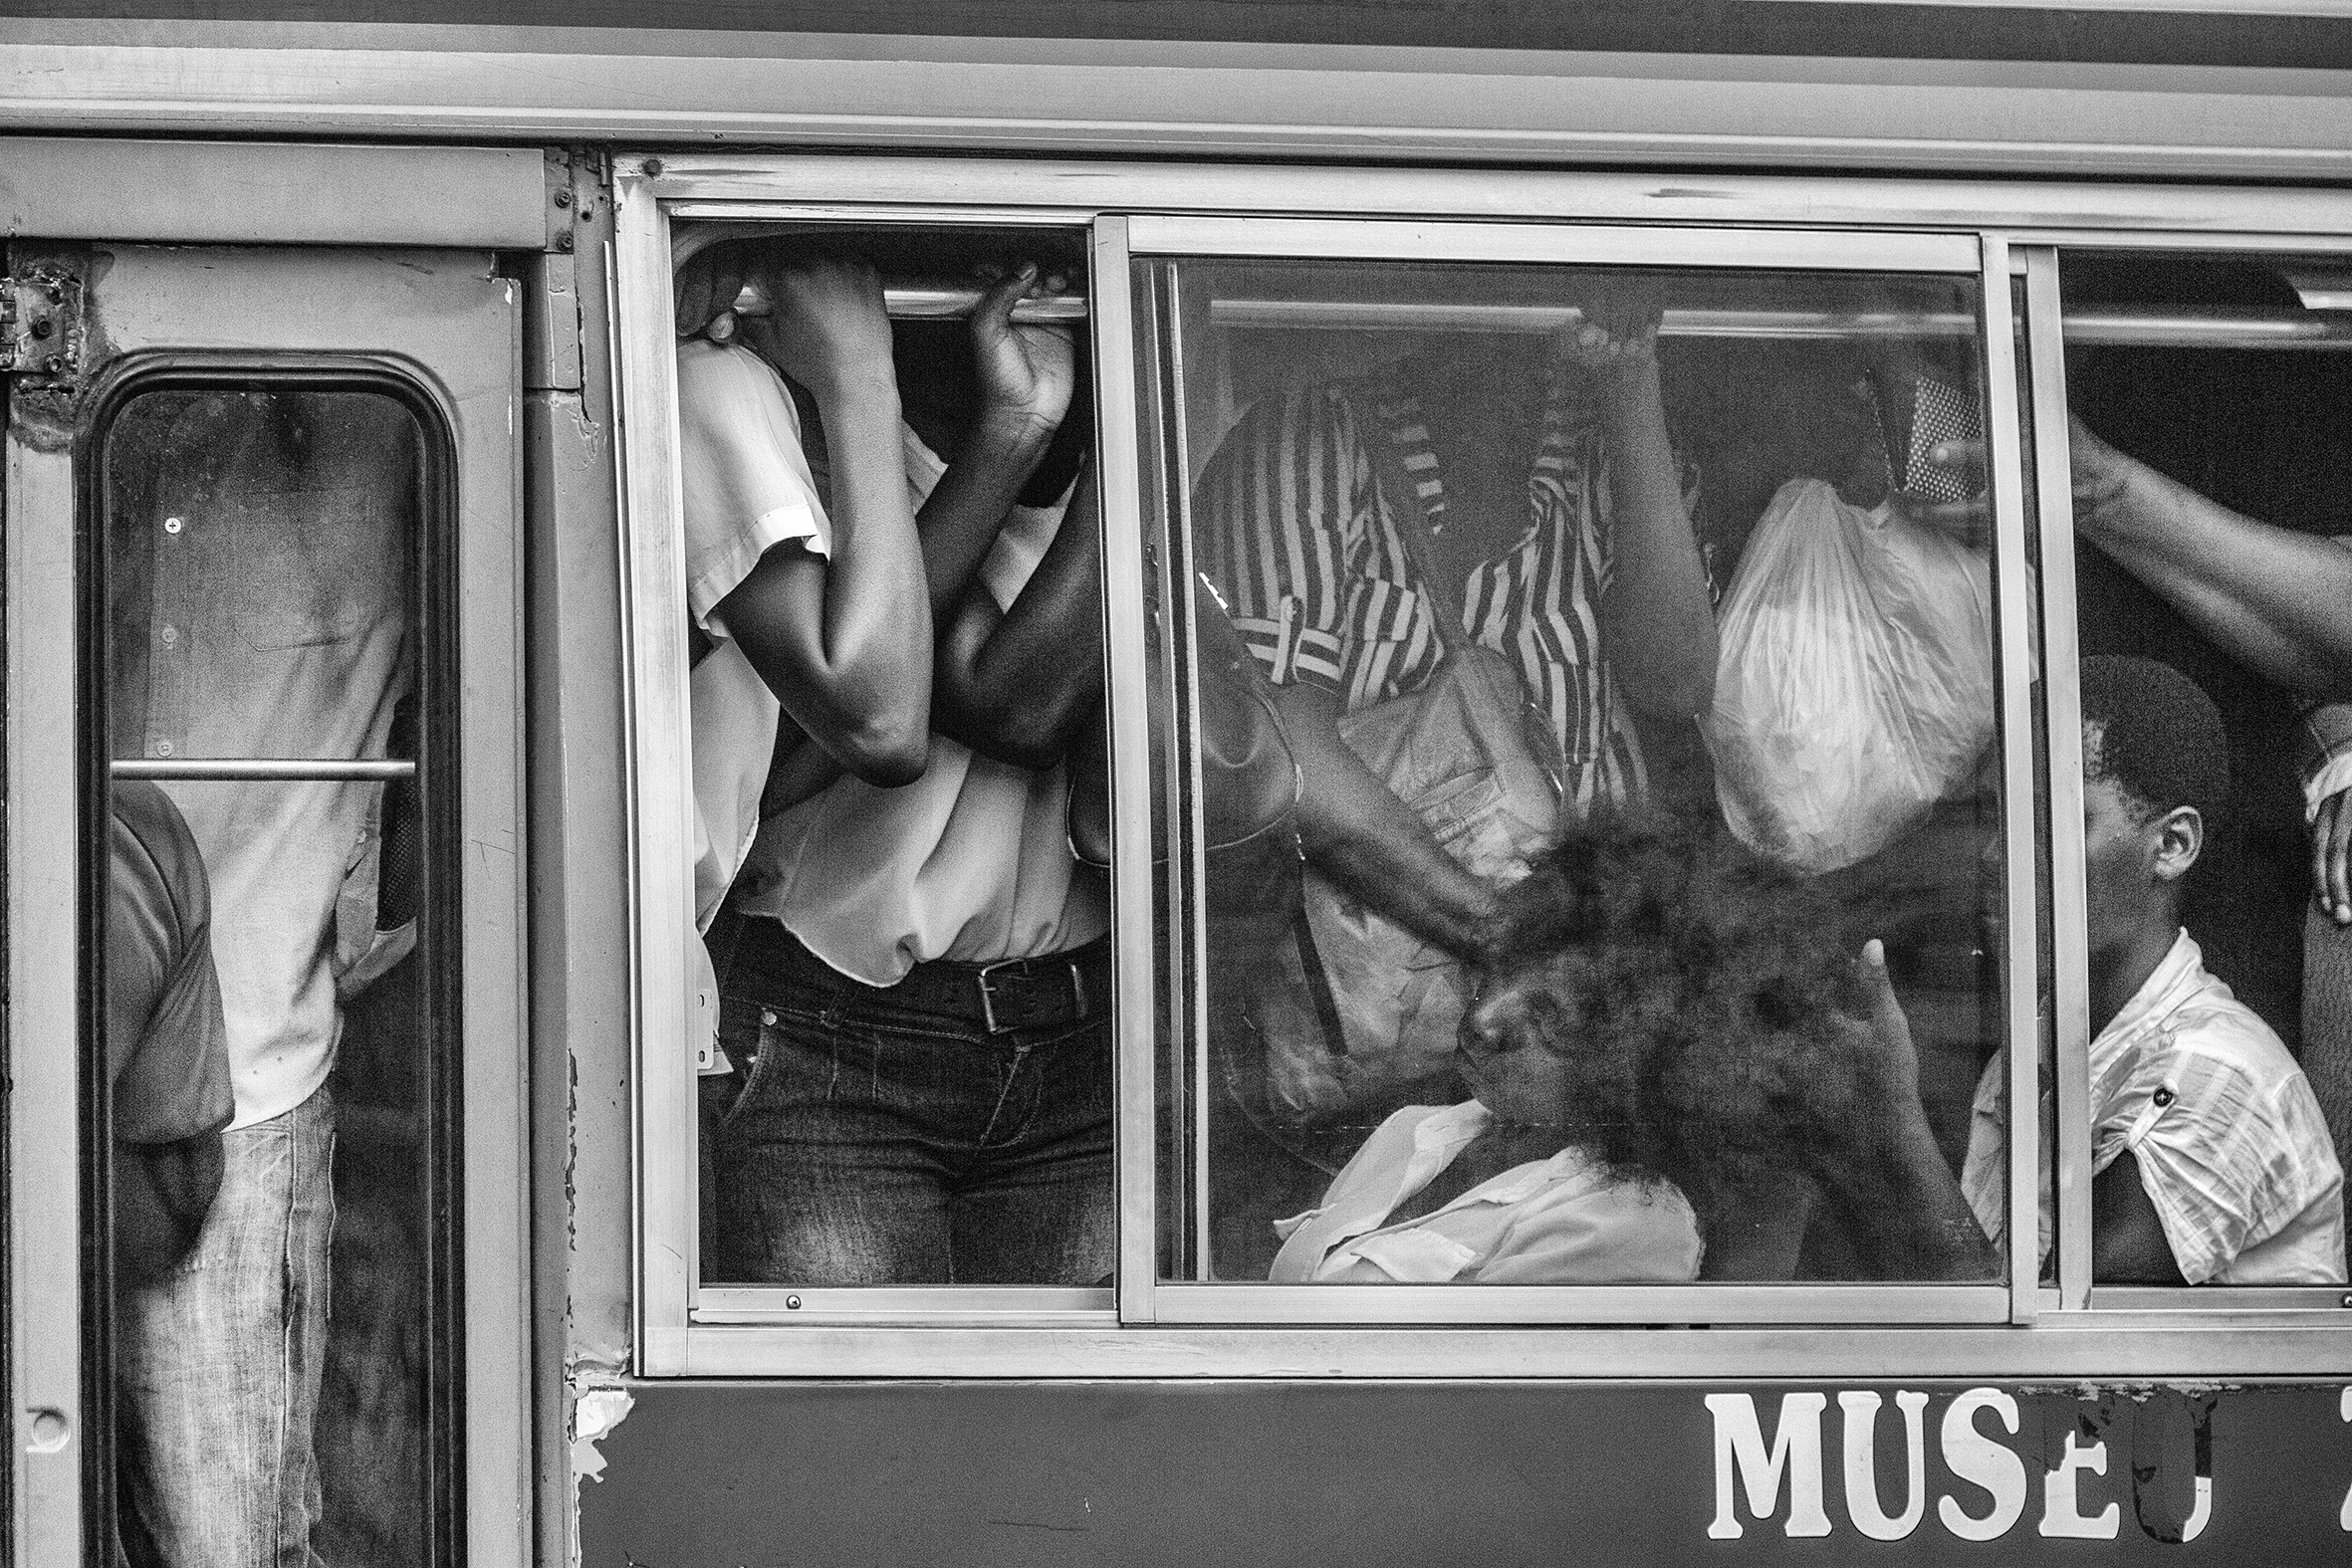 ©Mauro Vombe. From the series Passengers.